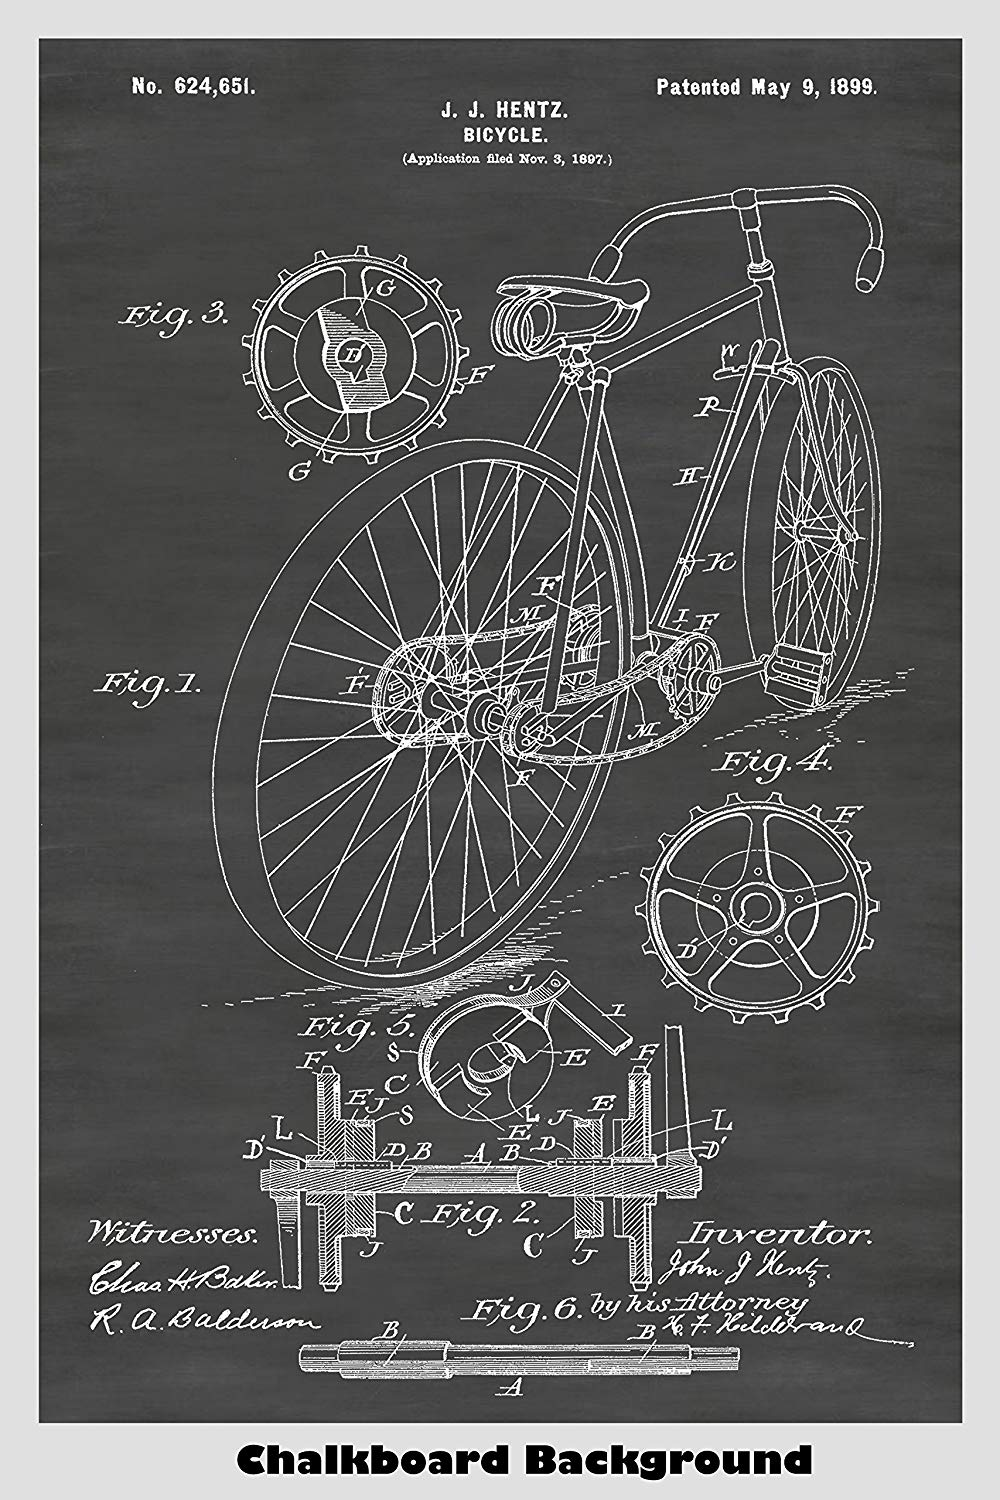 Antique Bicycle Art Patent on a Chalkboard Background